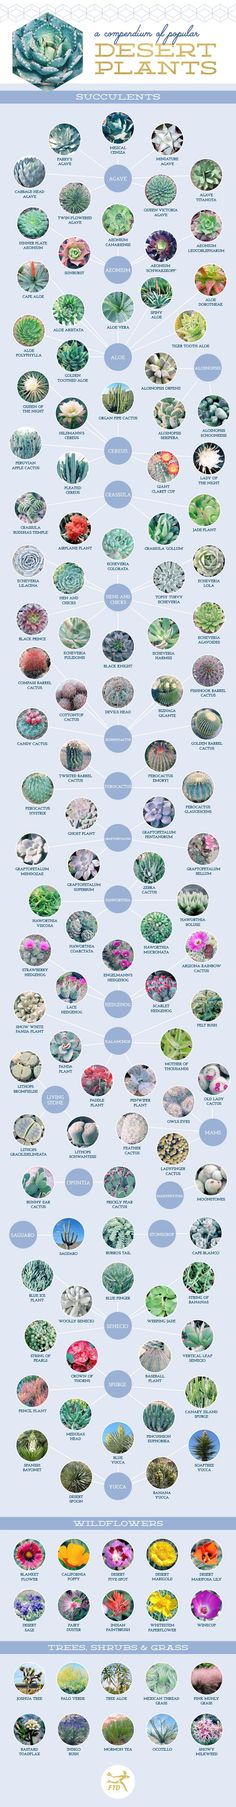 Don\'t know the name of your succulent or cactus plant? This great Compendium of 127 Stunning Desert Plants and Succulents may help. Image shared with permission of ftd.com . For help on propagating succulents please visit thegardeningcook.com